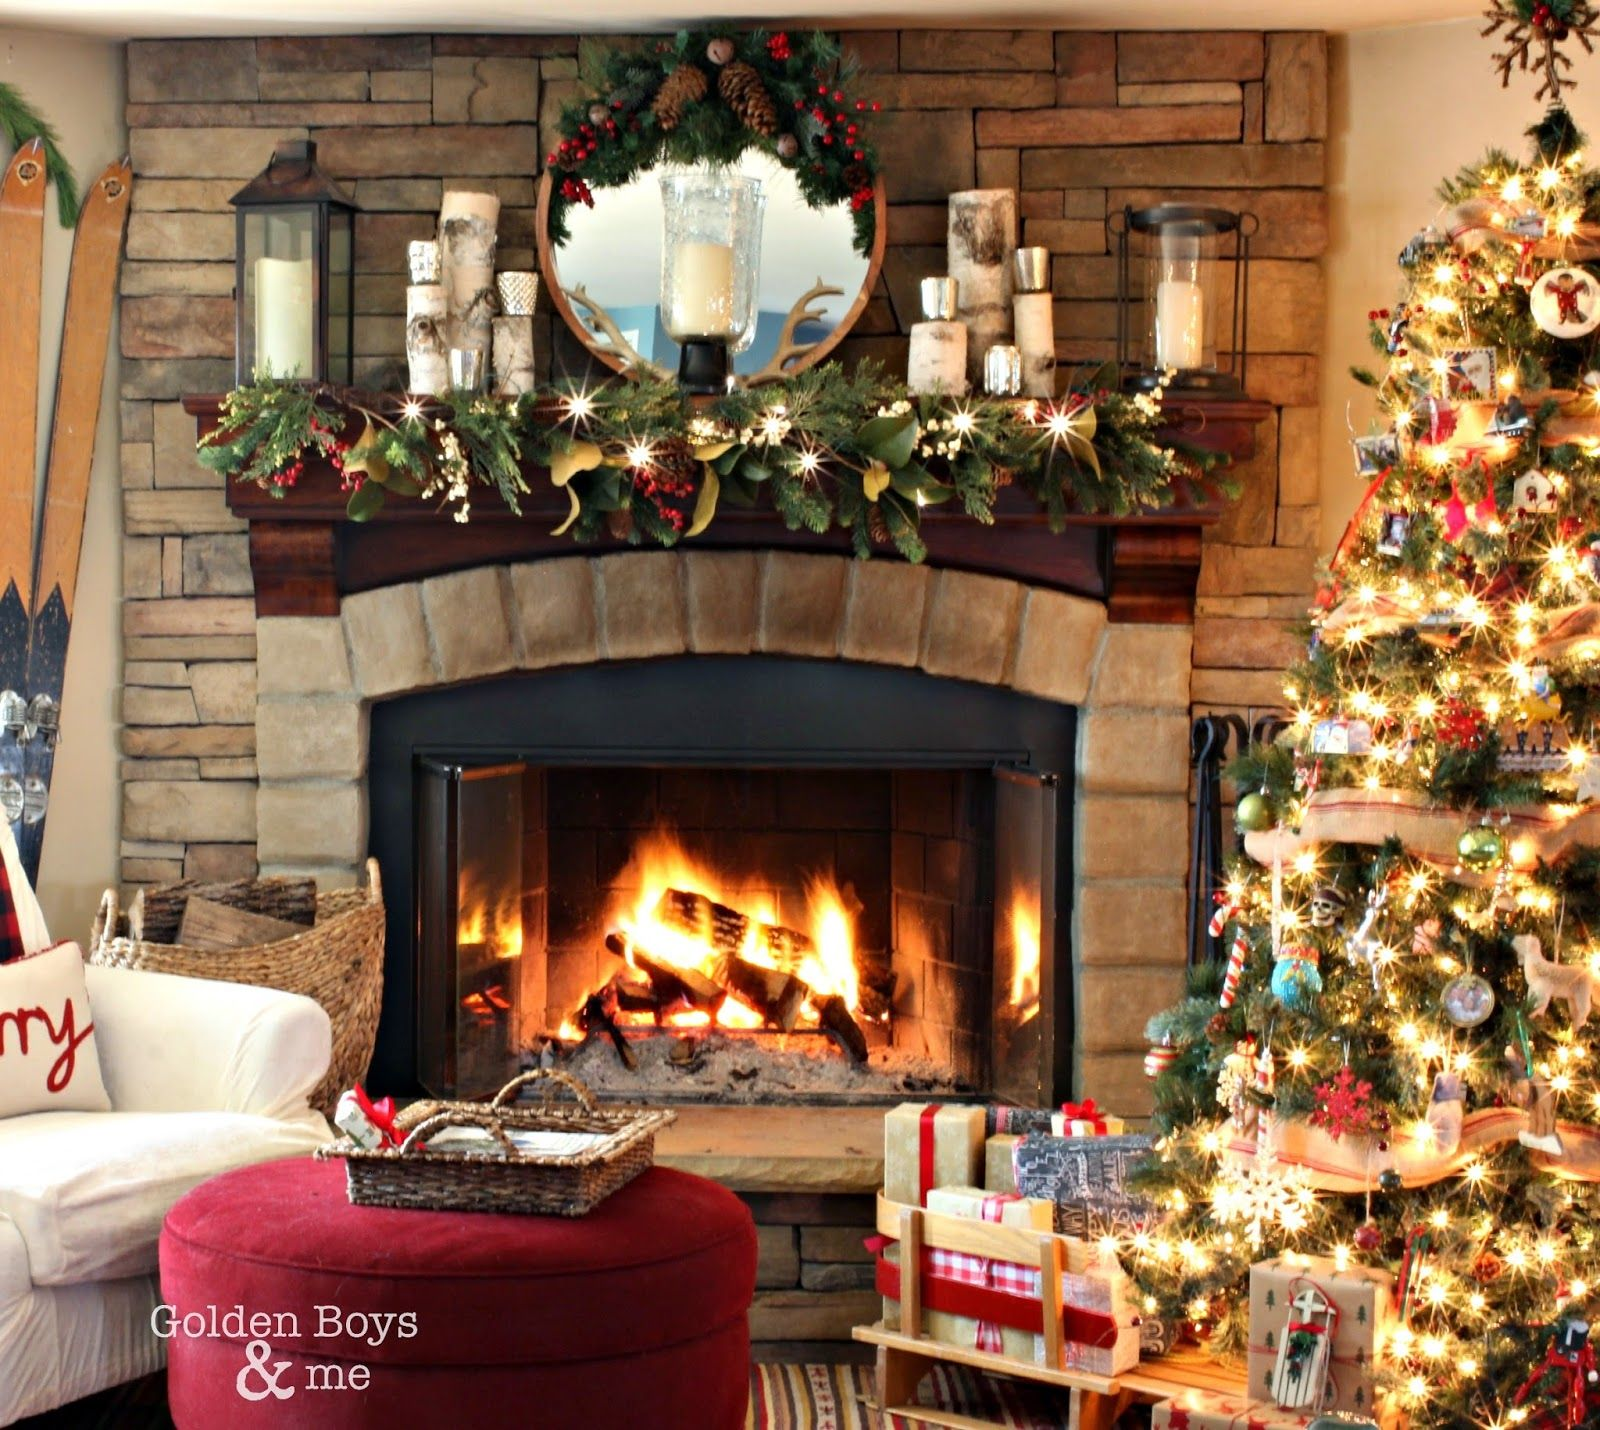 Rustic Christmas Mantel Corner Stone Fireplace Lodge